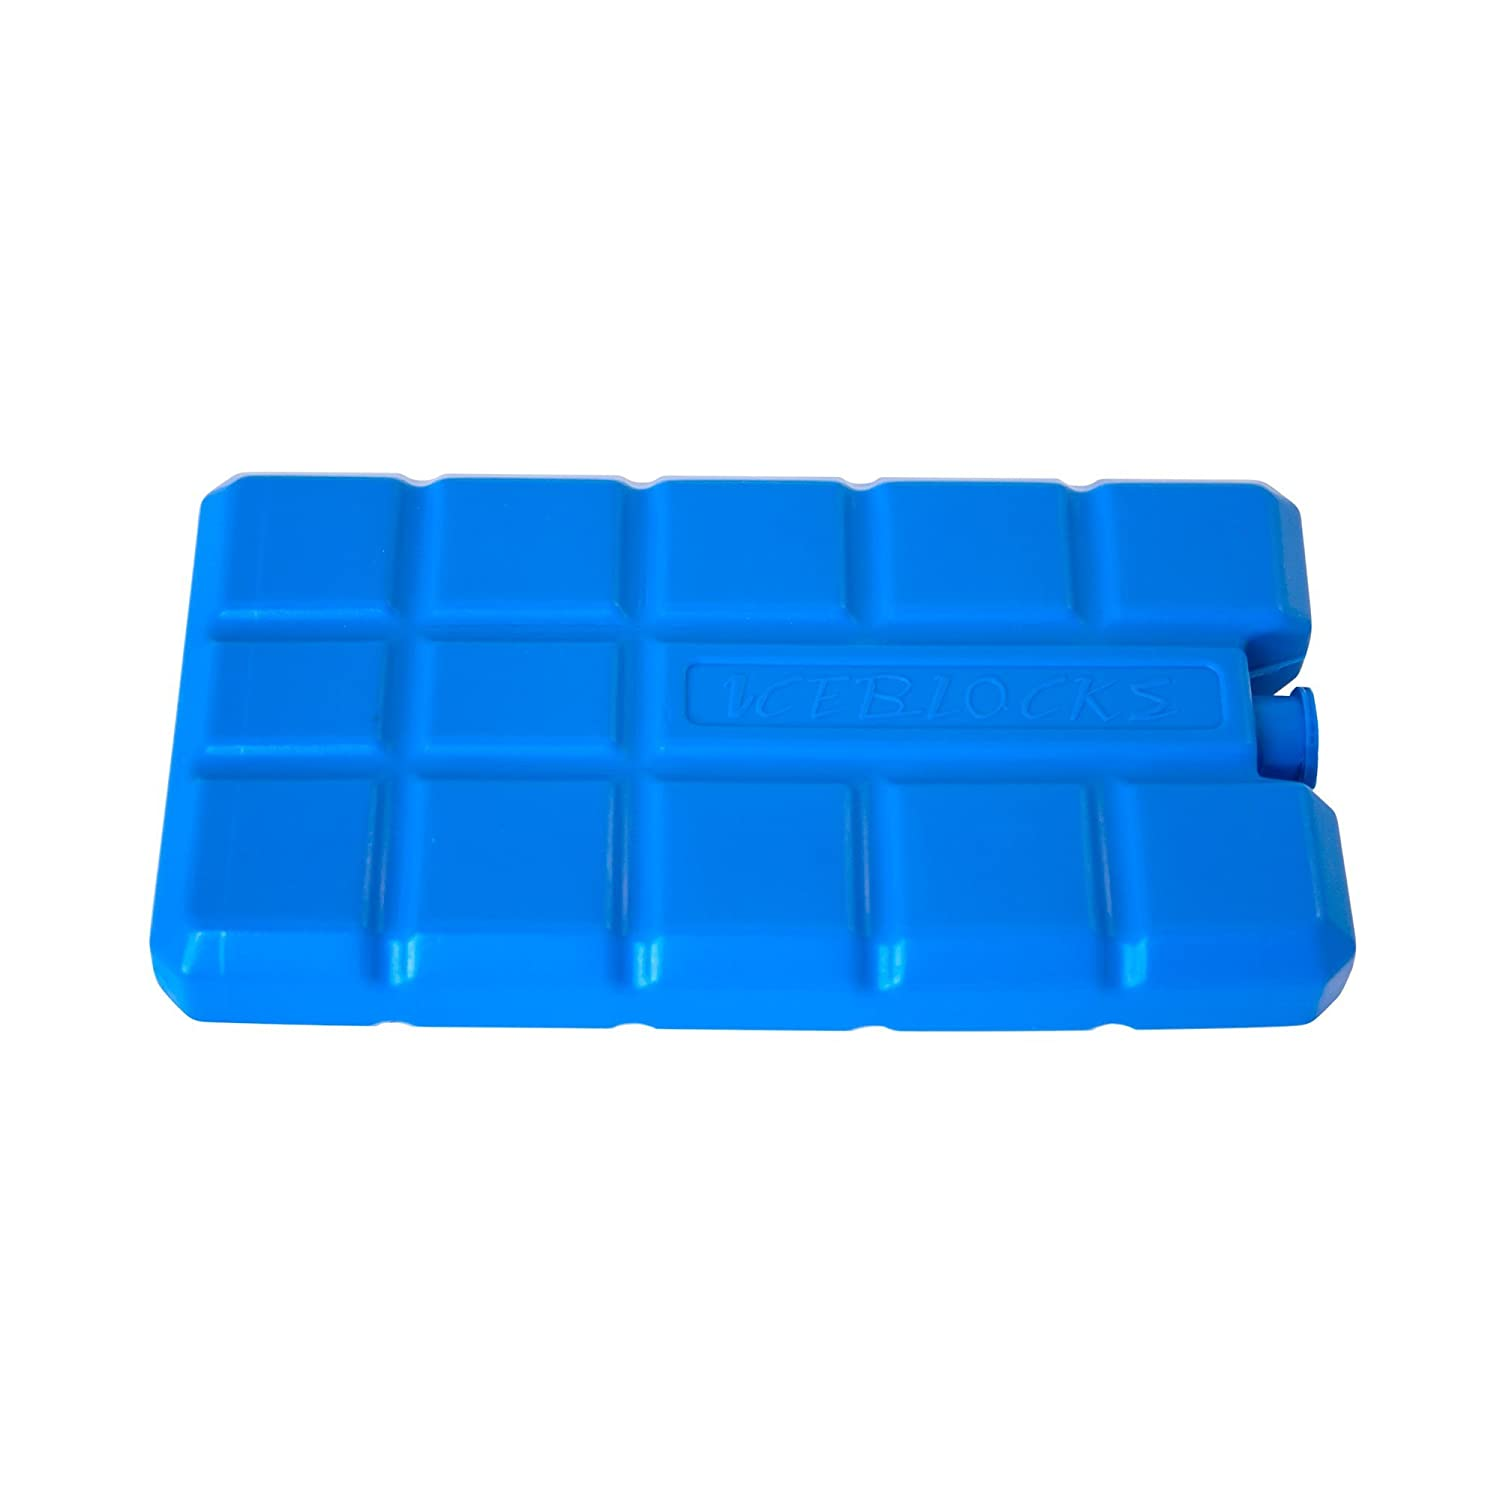 2 Ice Packs for Cooling Bag or Box ToCi Ice Packs Each with 200/ml